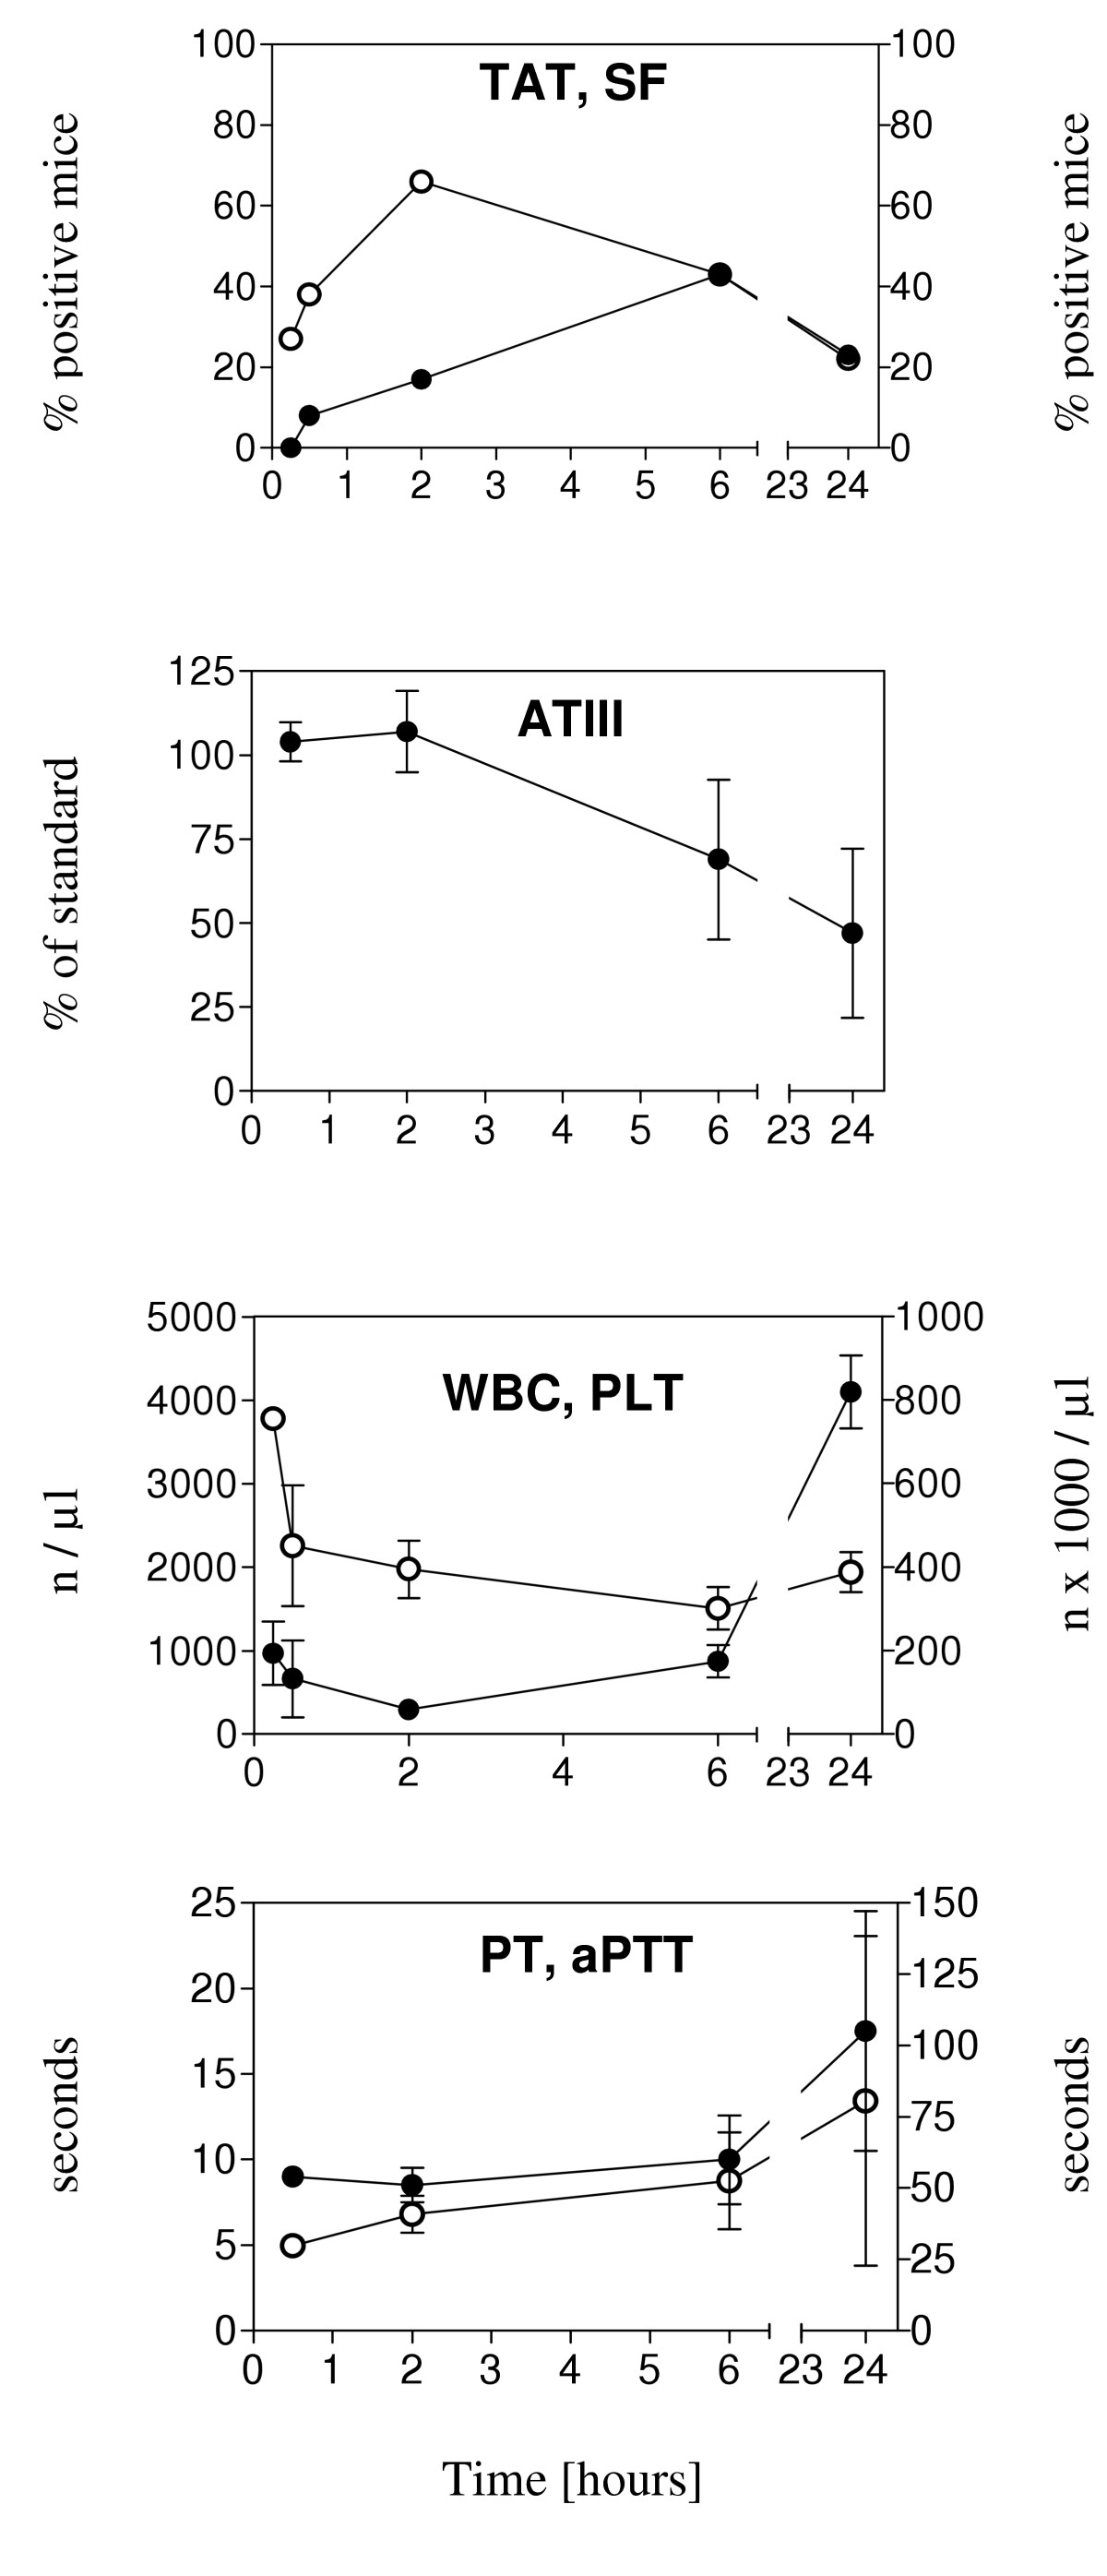 http://static-content.springer.com/image/art%3A10.1186%2F1477-9560-3-21/MediaObjects/12959_2005_Article_40_Fig3_HTML.jpg